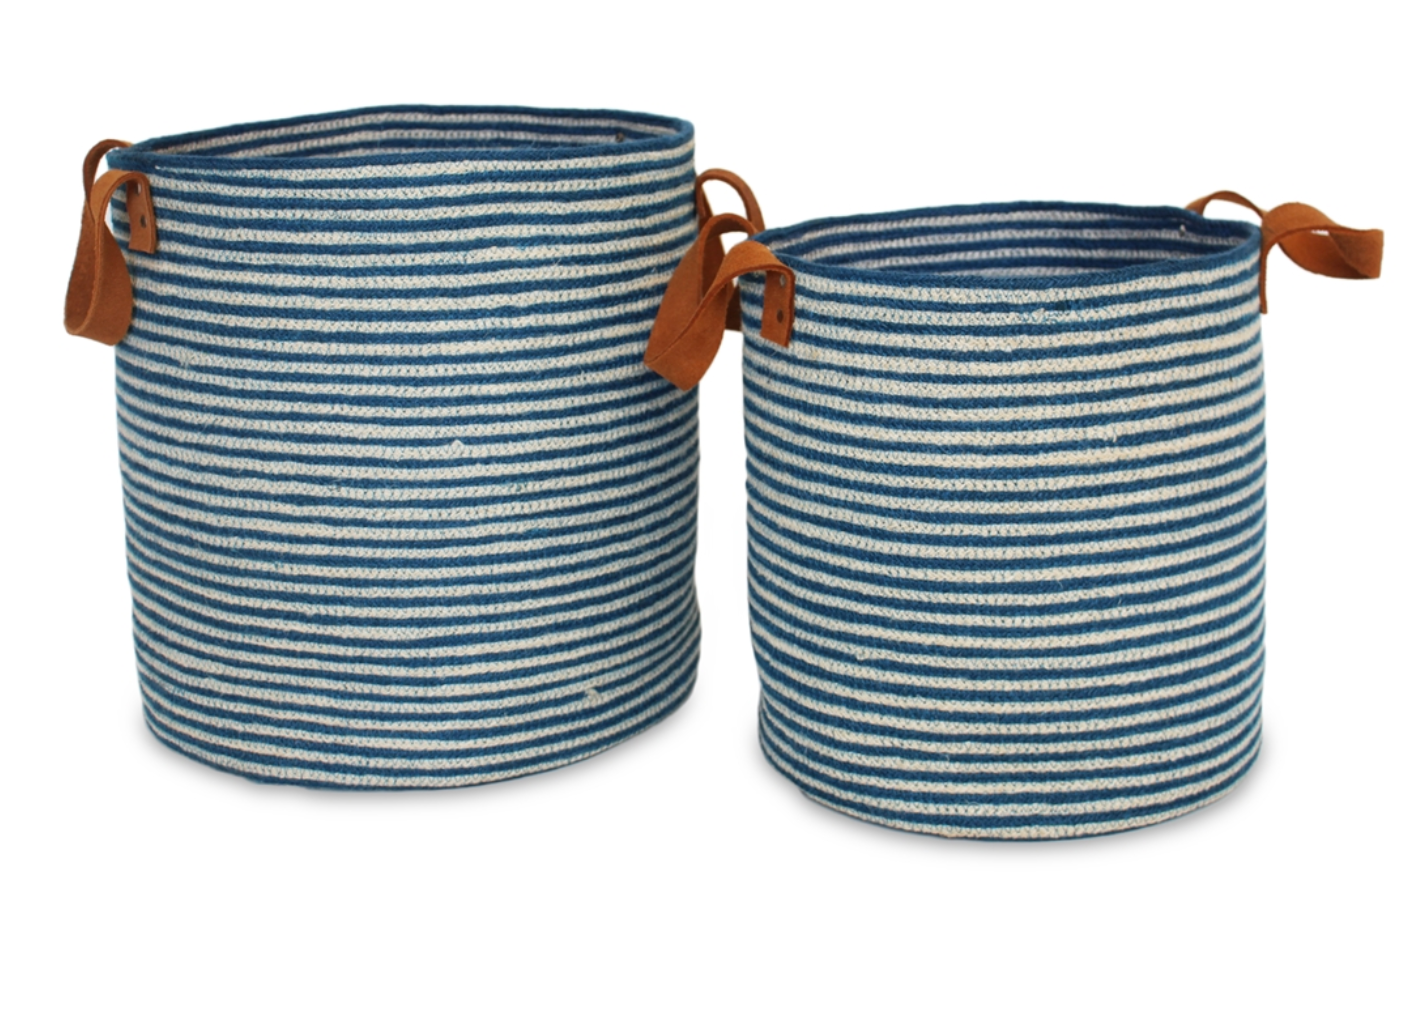 Blue and White Leather Handle Baskets, Set of 2